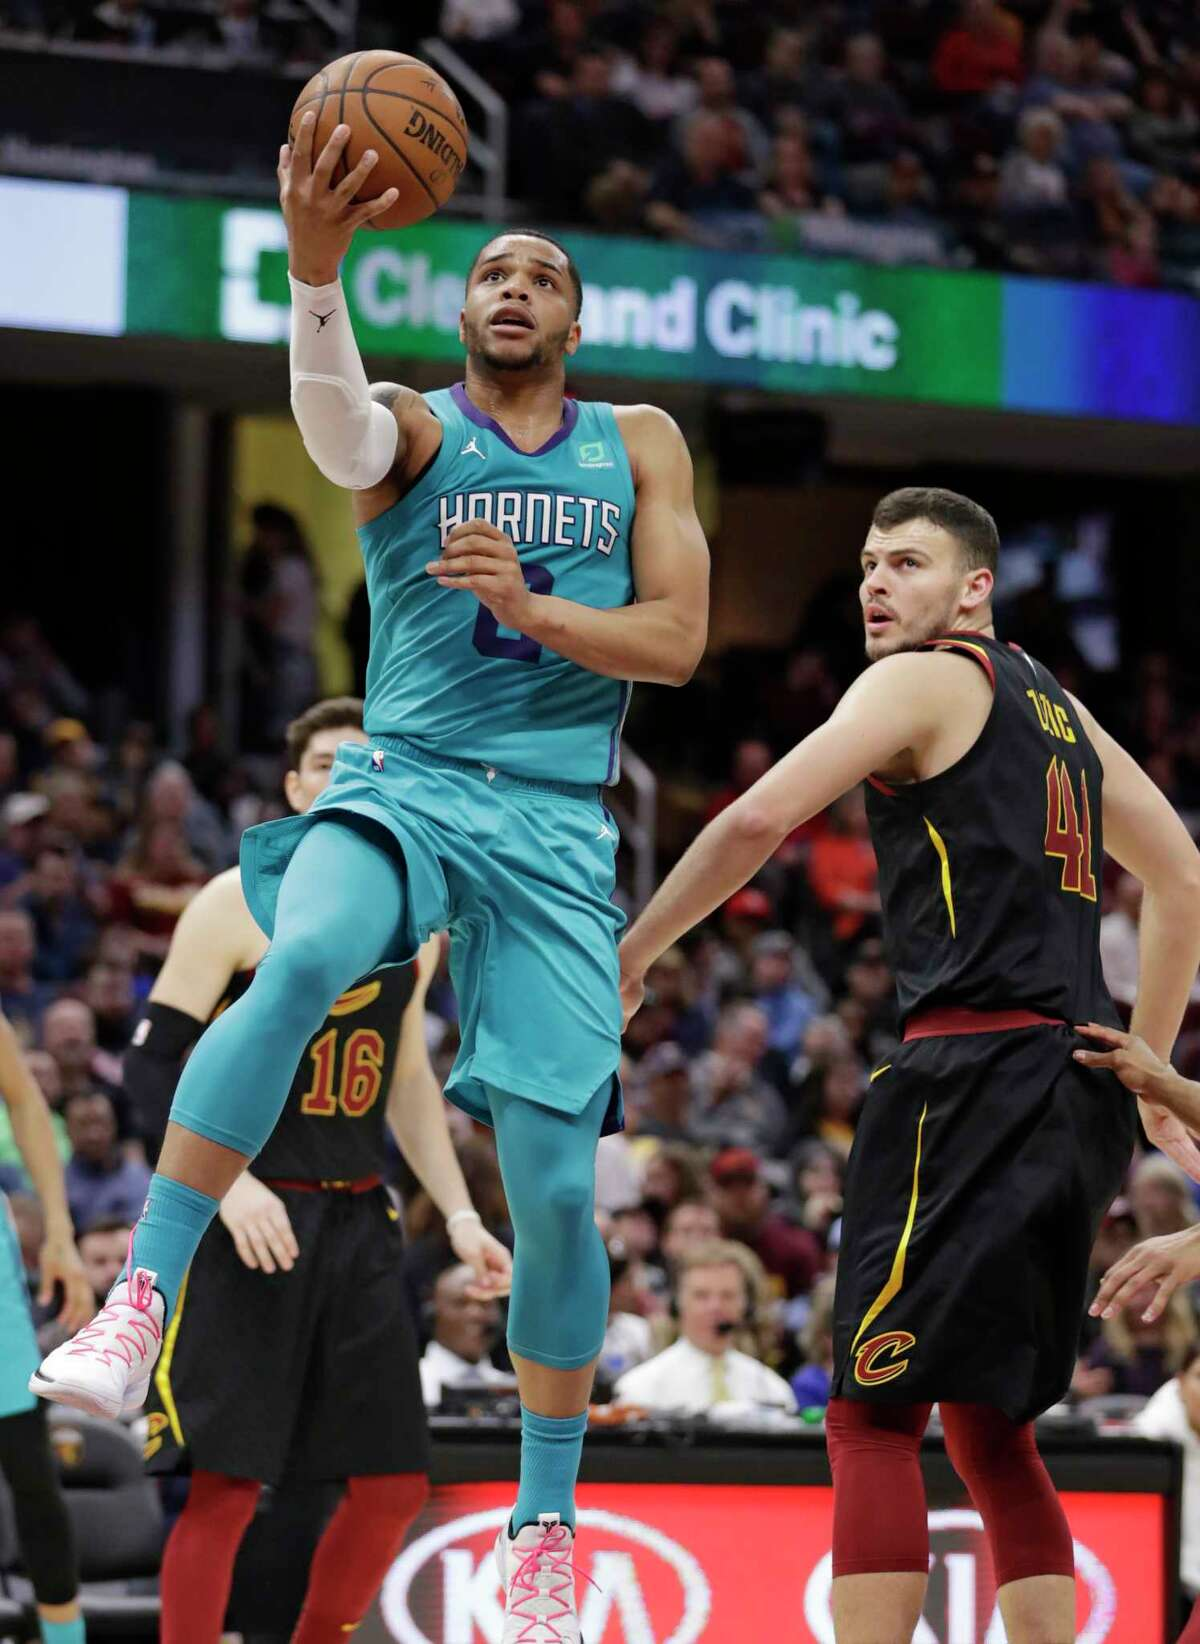 Charlotte Hornets' Miles Bridges, left, drives to the basket against Cleveland Cavaliers' Ante Zizic in the second half of an NBA basketball game, Tuesday, April 9, 2019, in Cleveland. Charlotte won 124-97. (AP Photo/Tony Dejak)